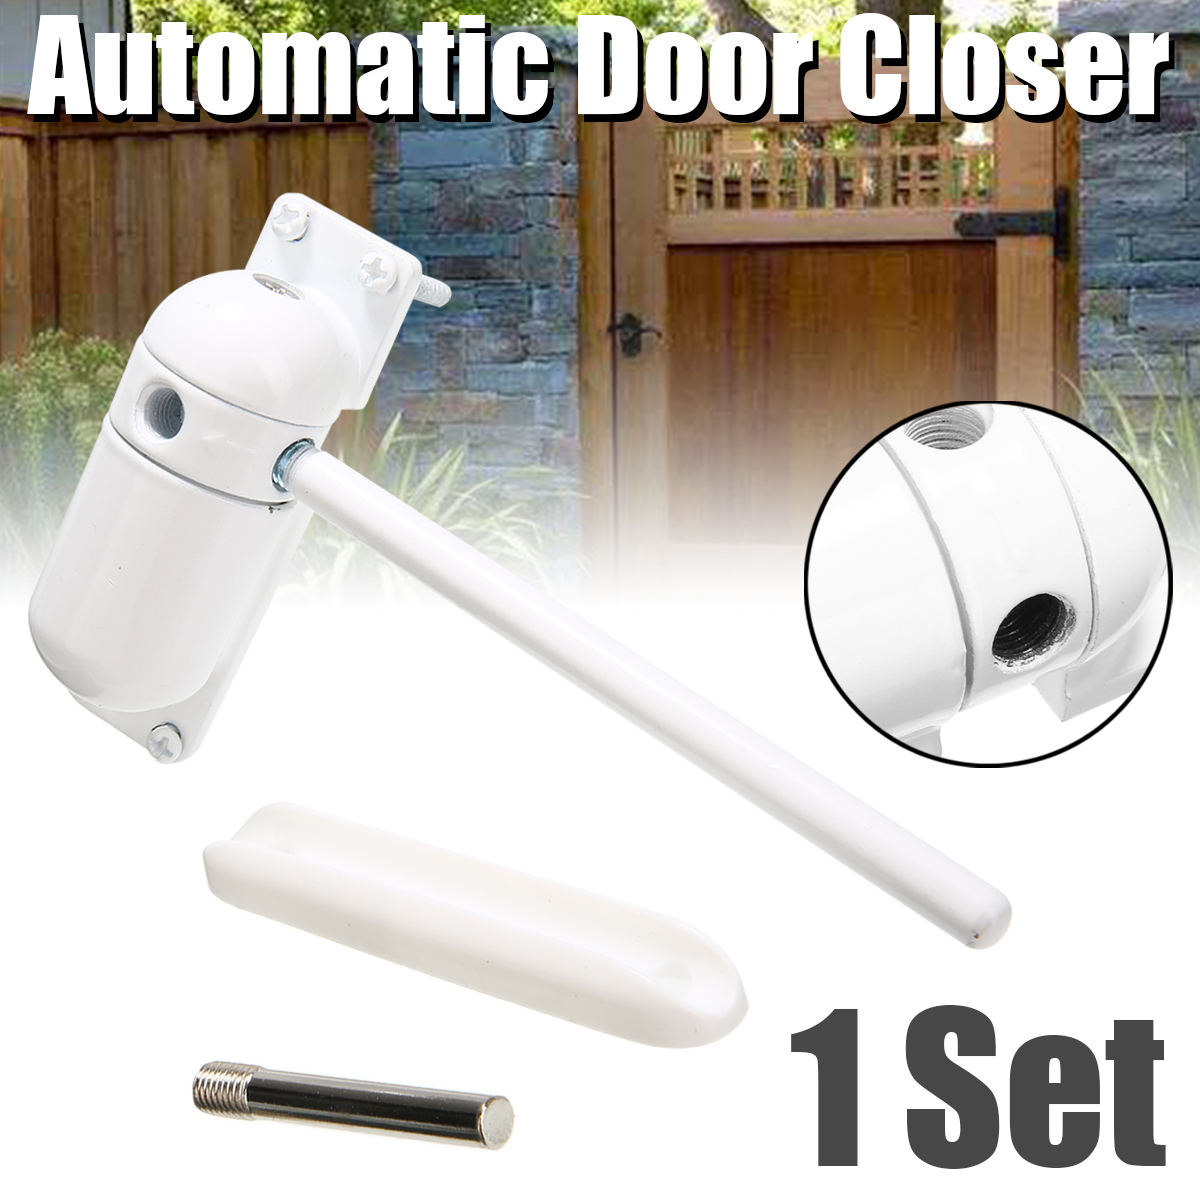 1 Set White Automatic Gate Closer Surface Mounted Door Stops Outdoor Garden Home Use Spring Adjustable Door Closer Fire Rated1 Set White Automatic Gate Closer Surface Mounted Door Stops Outdoor Garden Home Use Spring Adjustable Door Closer Fire Rated